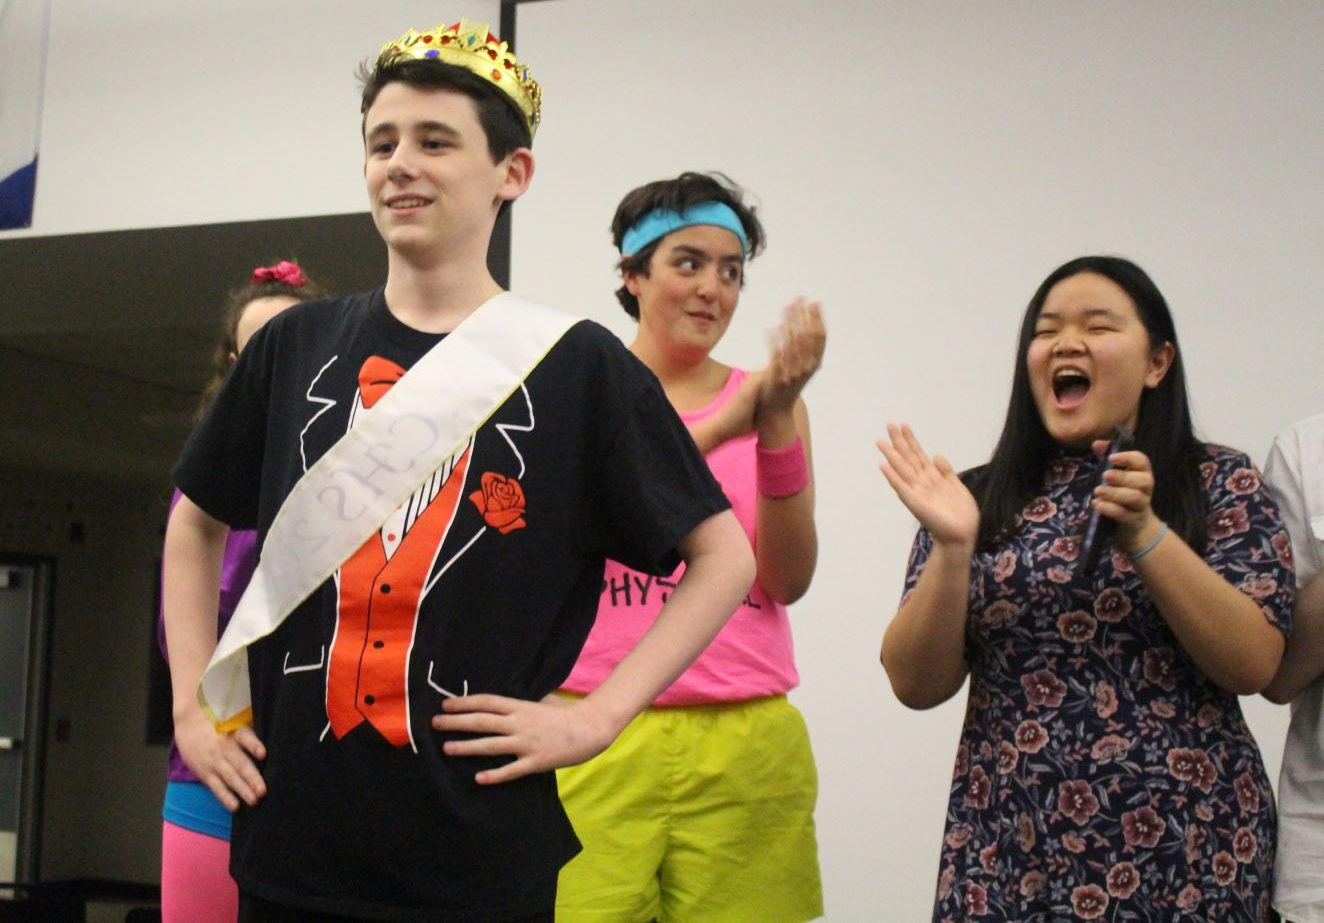 Freshman Jake Polvino of Tinton Falls was crowned Mr. CHS, earning 75 Spring Spirit Week points for his class.